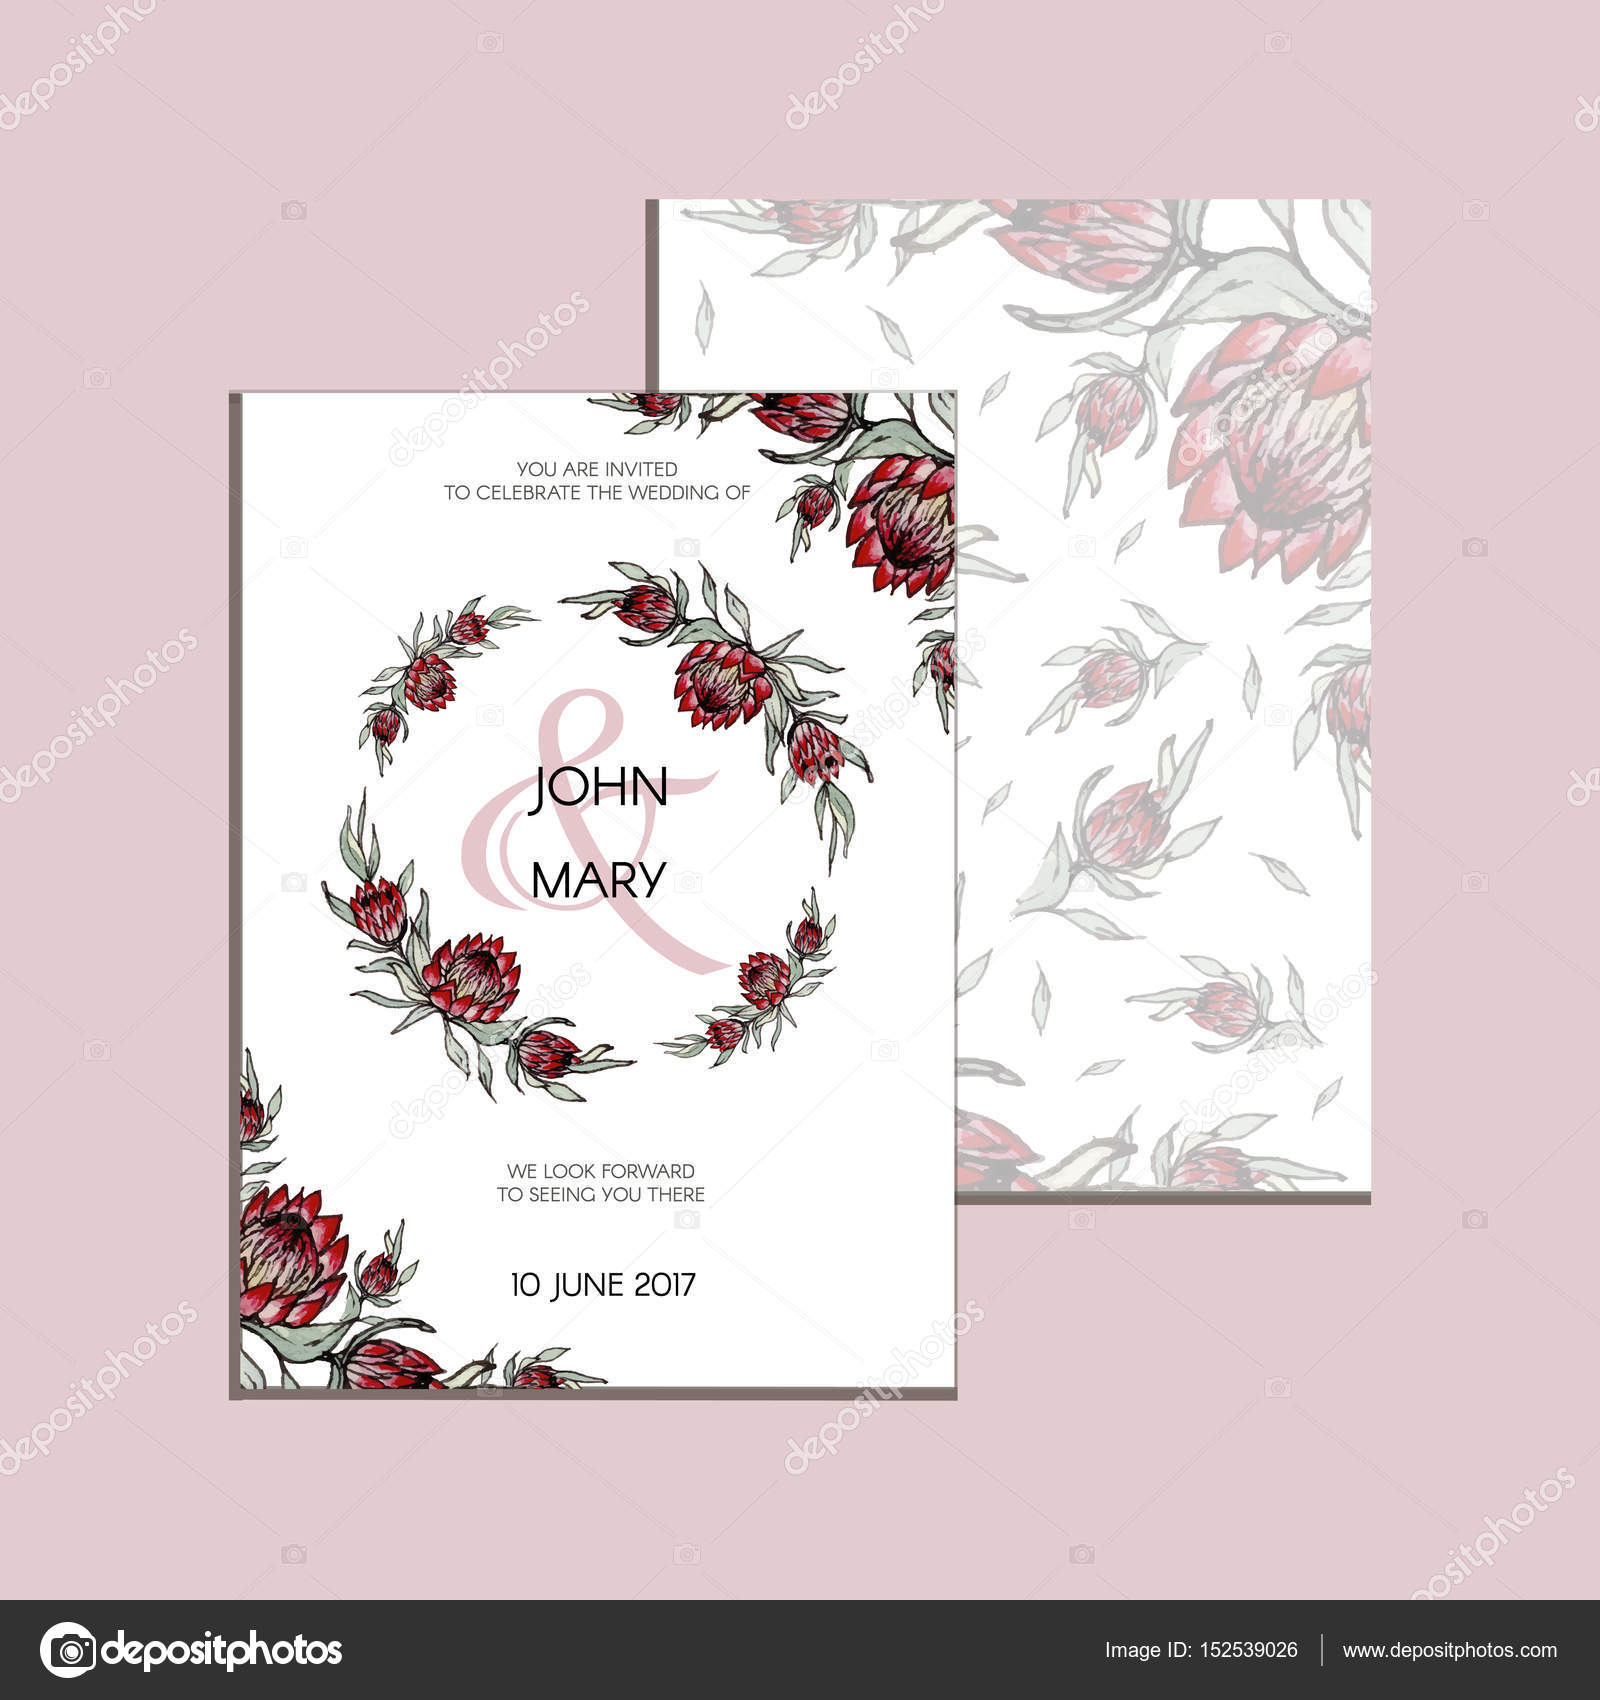 Vector invitation with handmade floral elements and flowers of